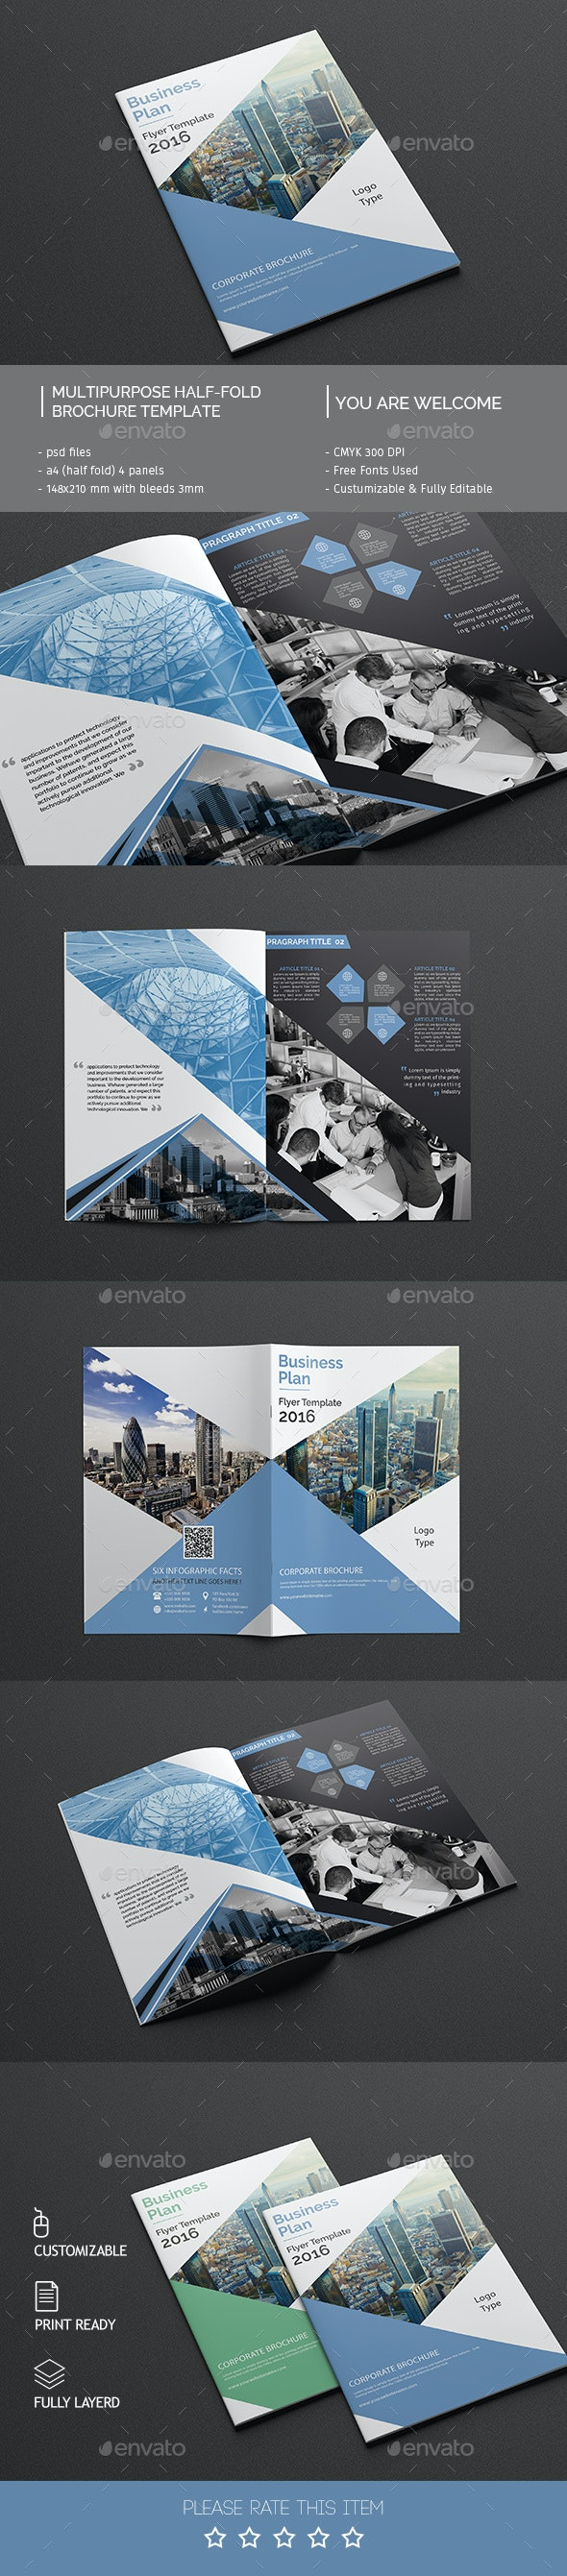 Corporate Bi-fold Brochure Template 03 - Corporate Brochures